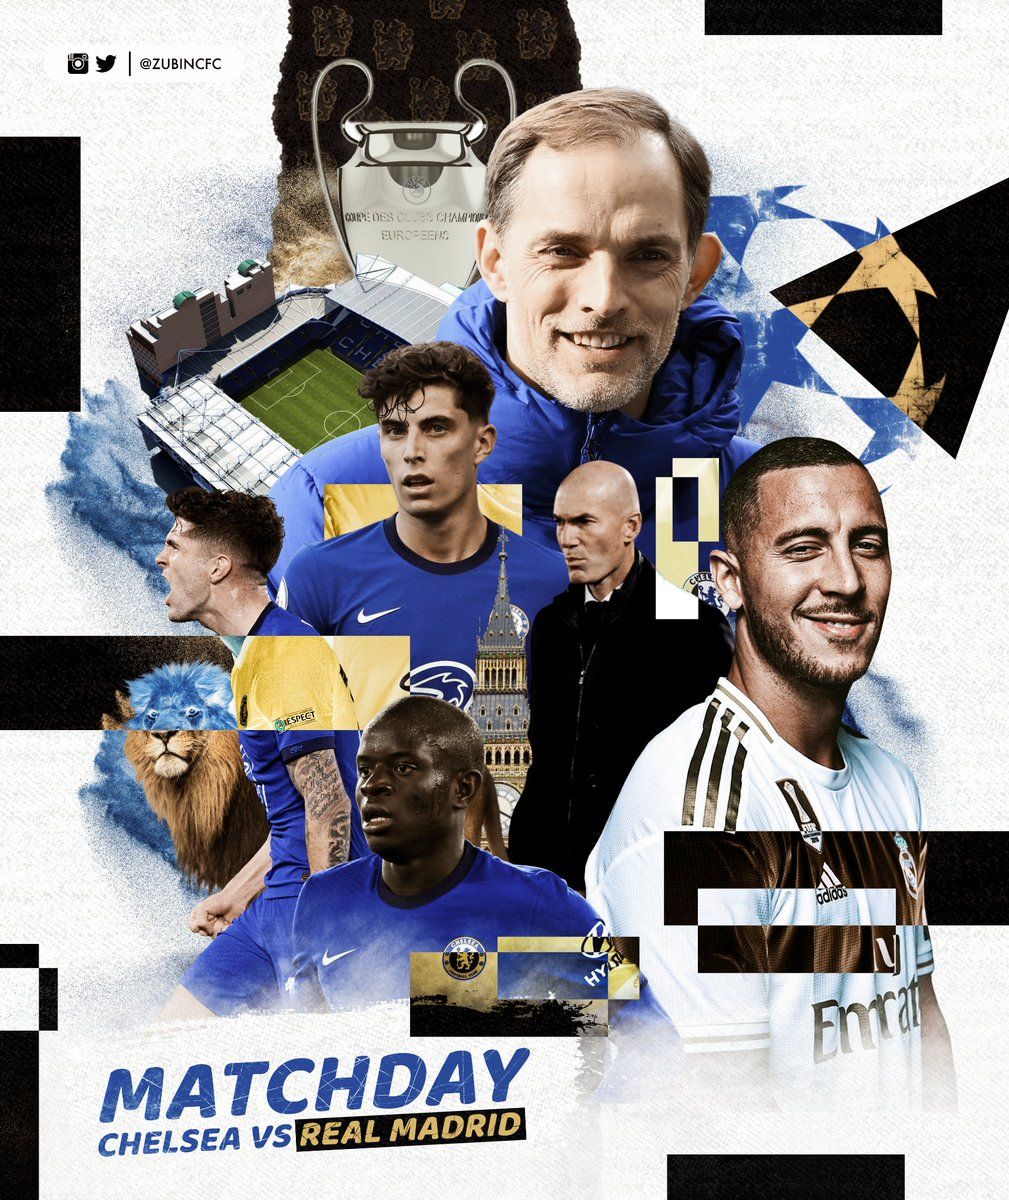 Chelsea vs Real Madrid Matchday Poster 💙🔥  #ChelseaFC #CHERMA #UCL https://t.co/9e9x1yUTlg